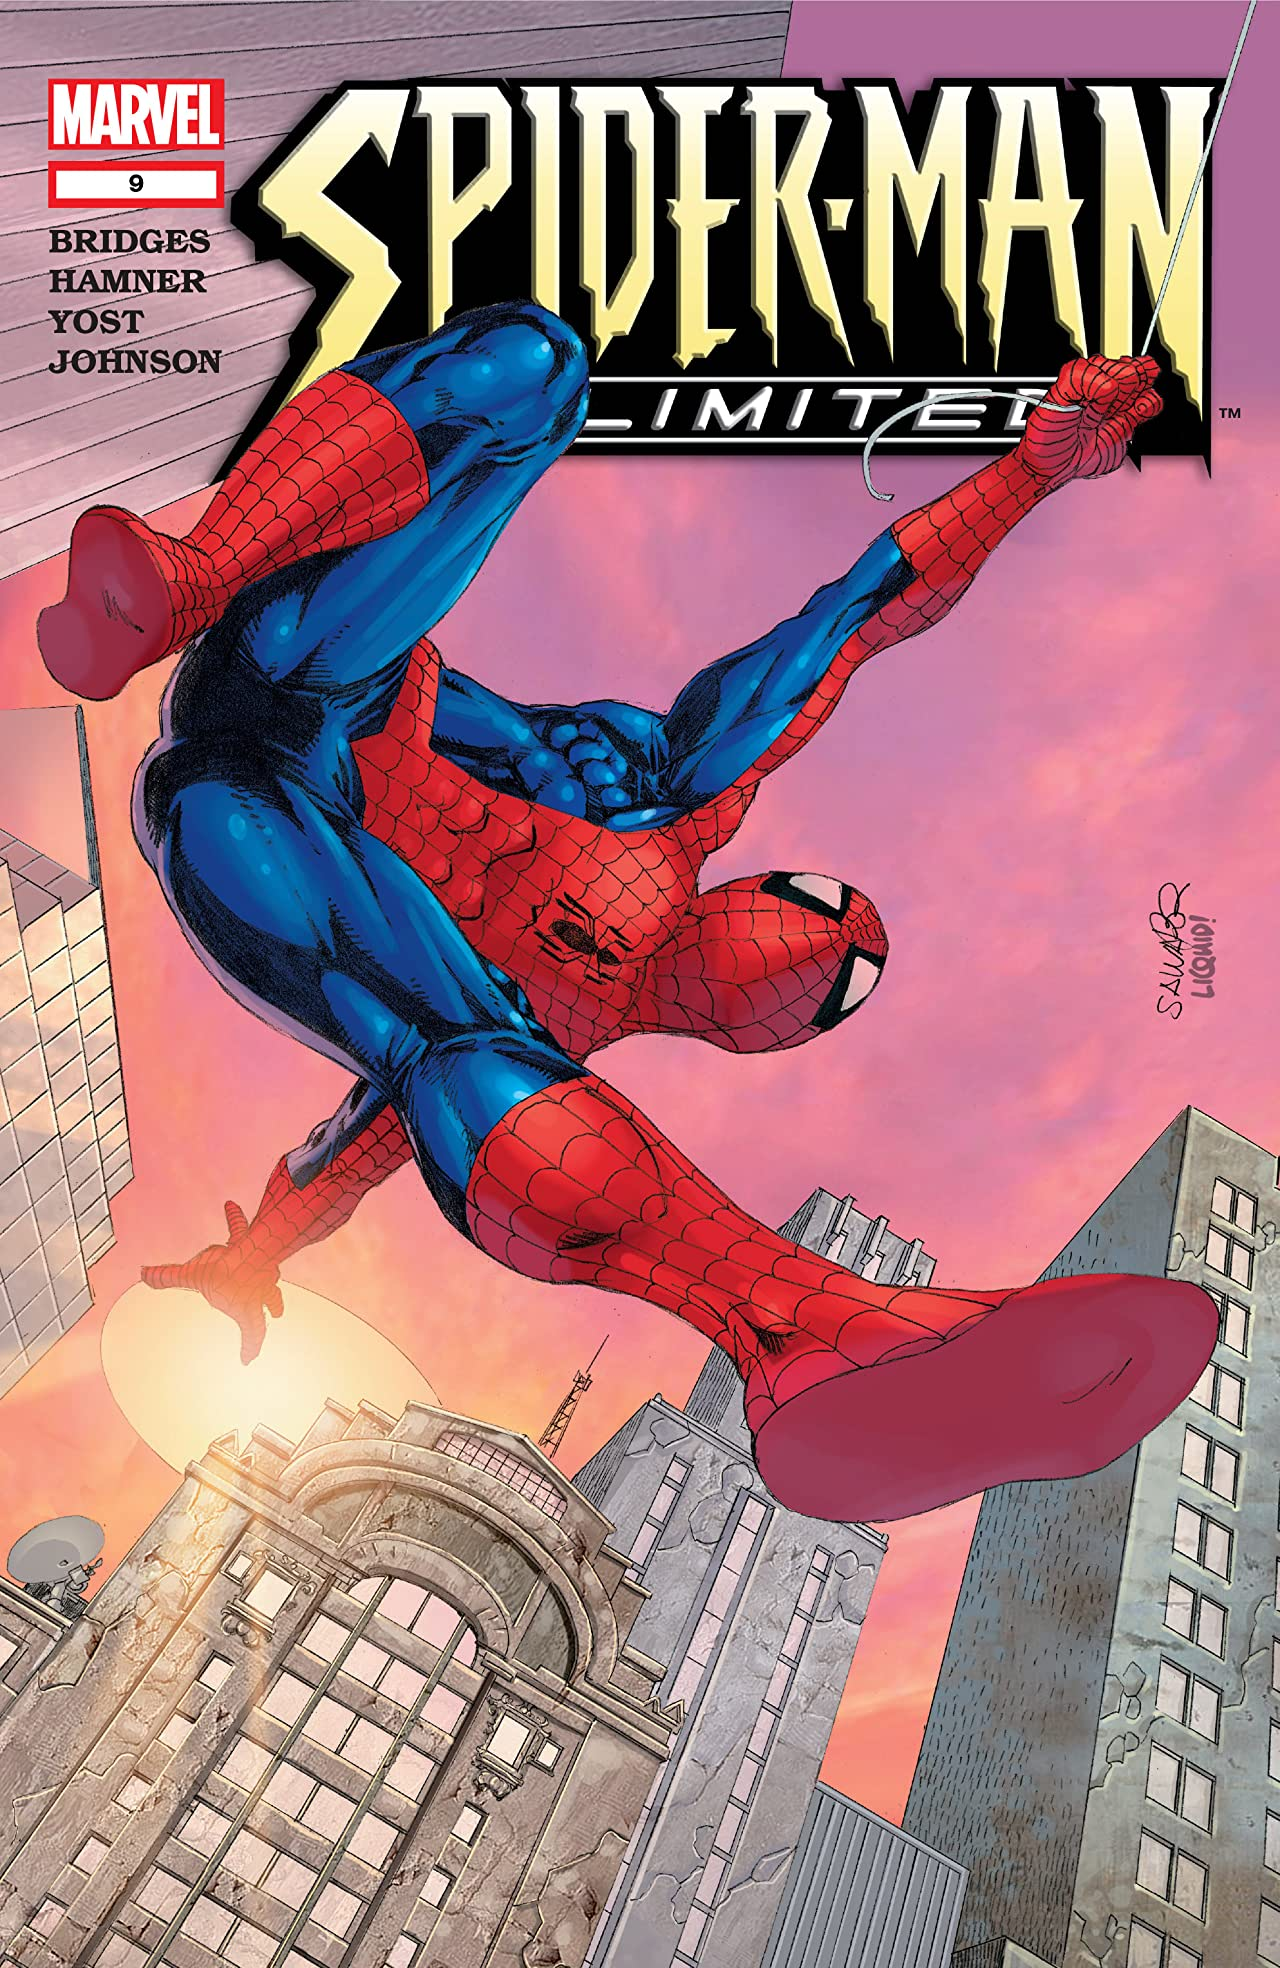 Spider-Man Unlimited (2004-2006) #9